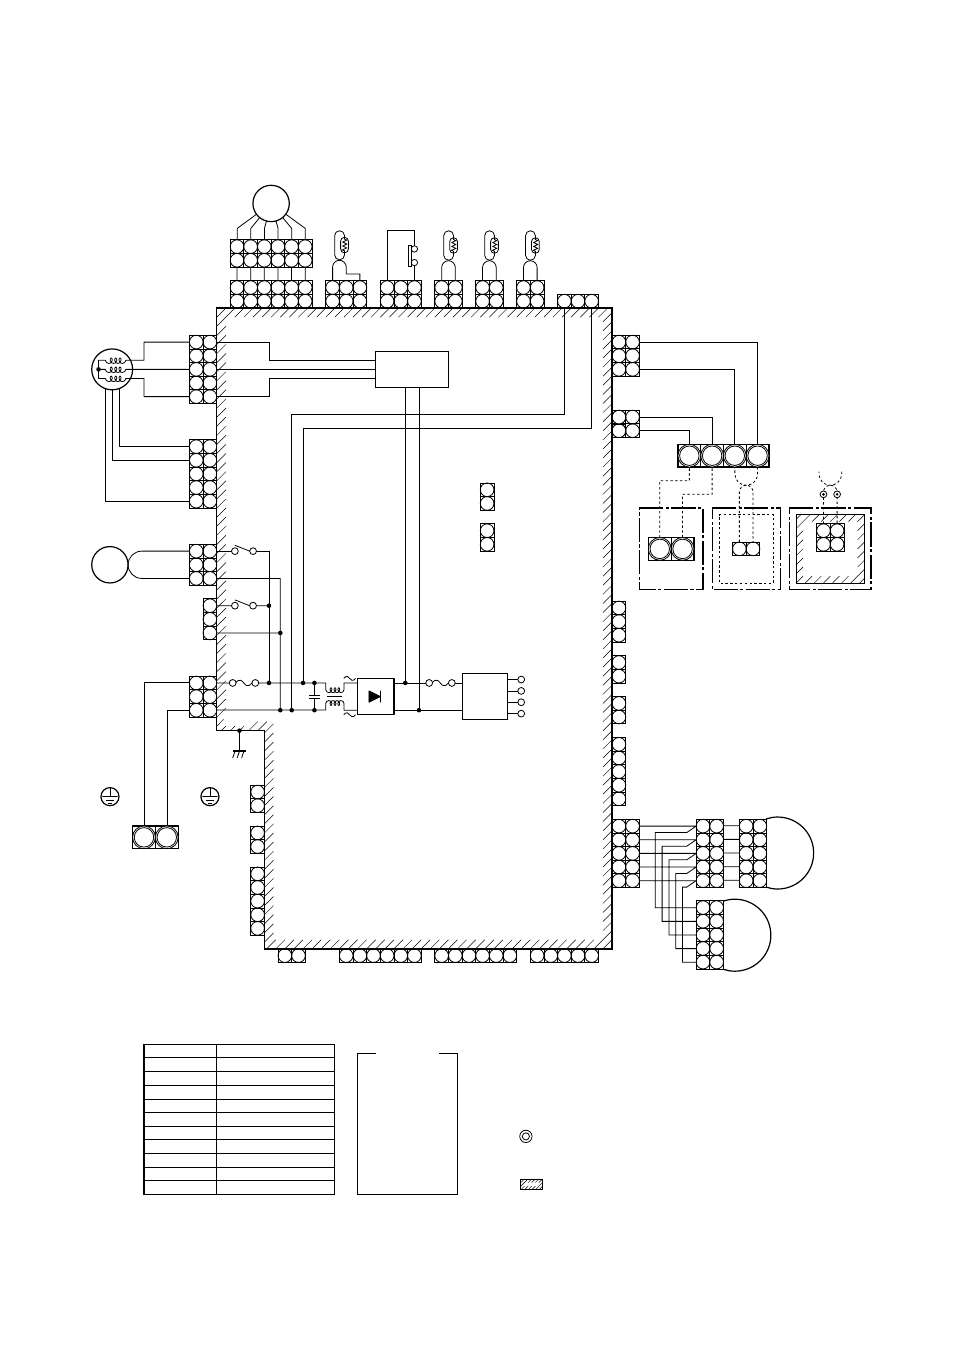 toshiba mmu ap0121mh page9 wiring diagram, control p c board for indoor unit mcc 1402 toshiba motor wiring diagram at bayanpartner.co